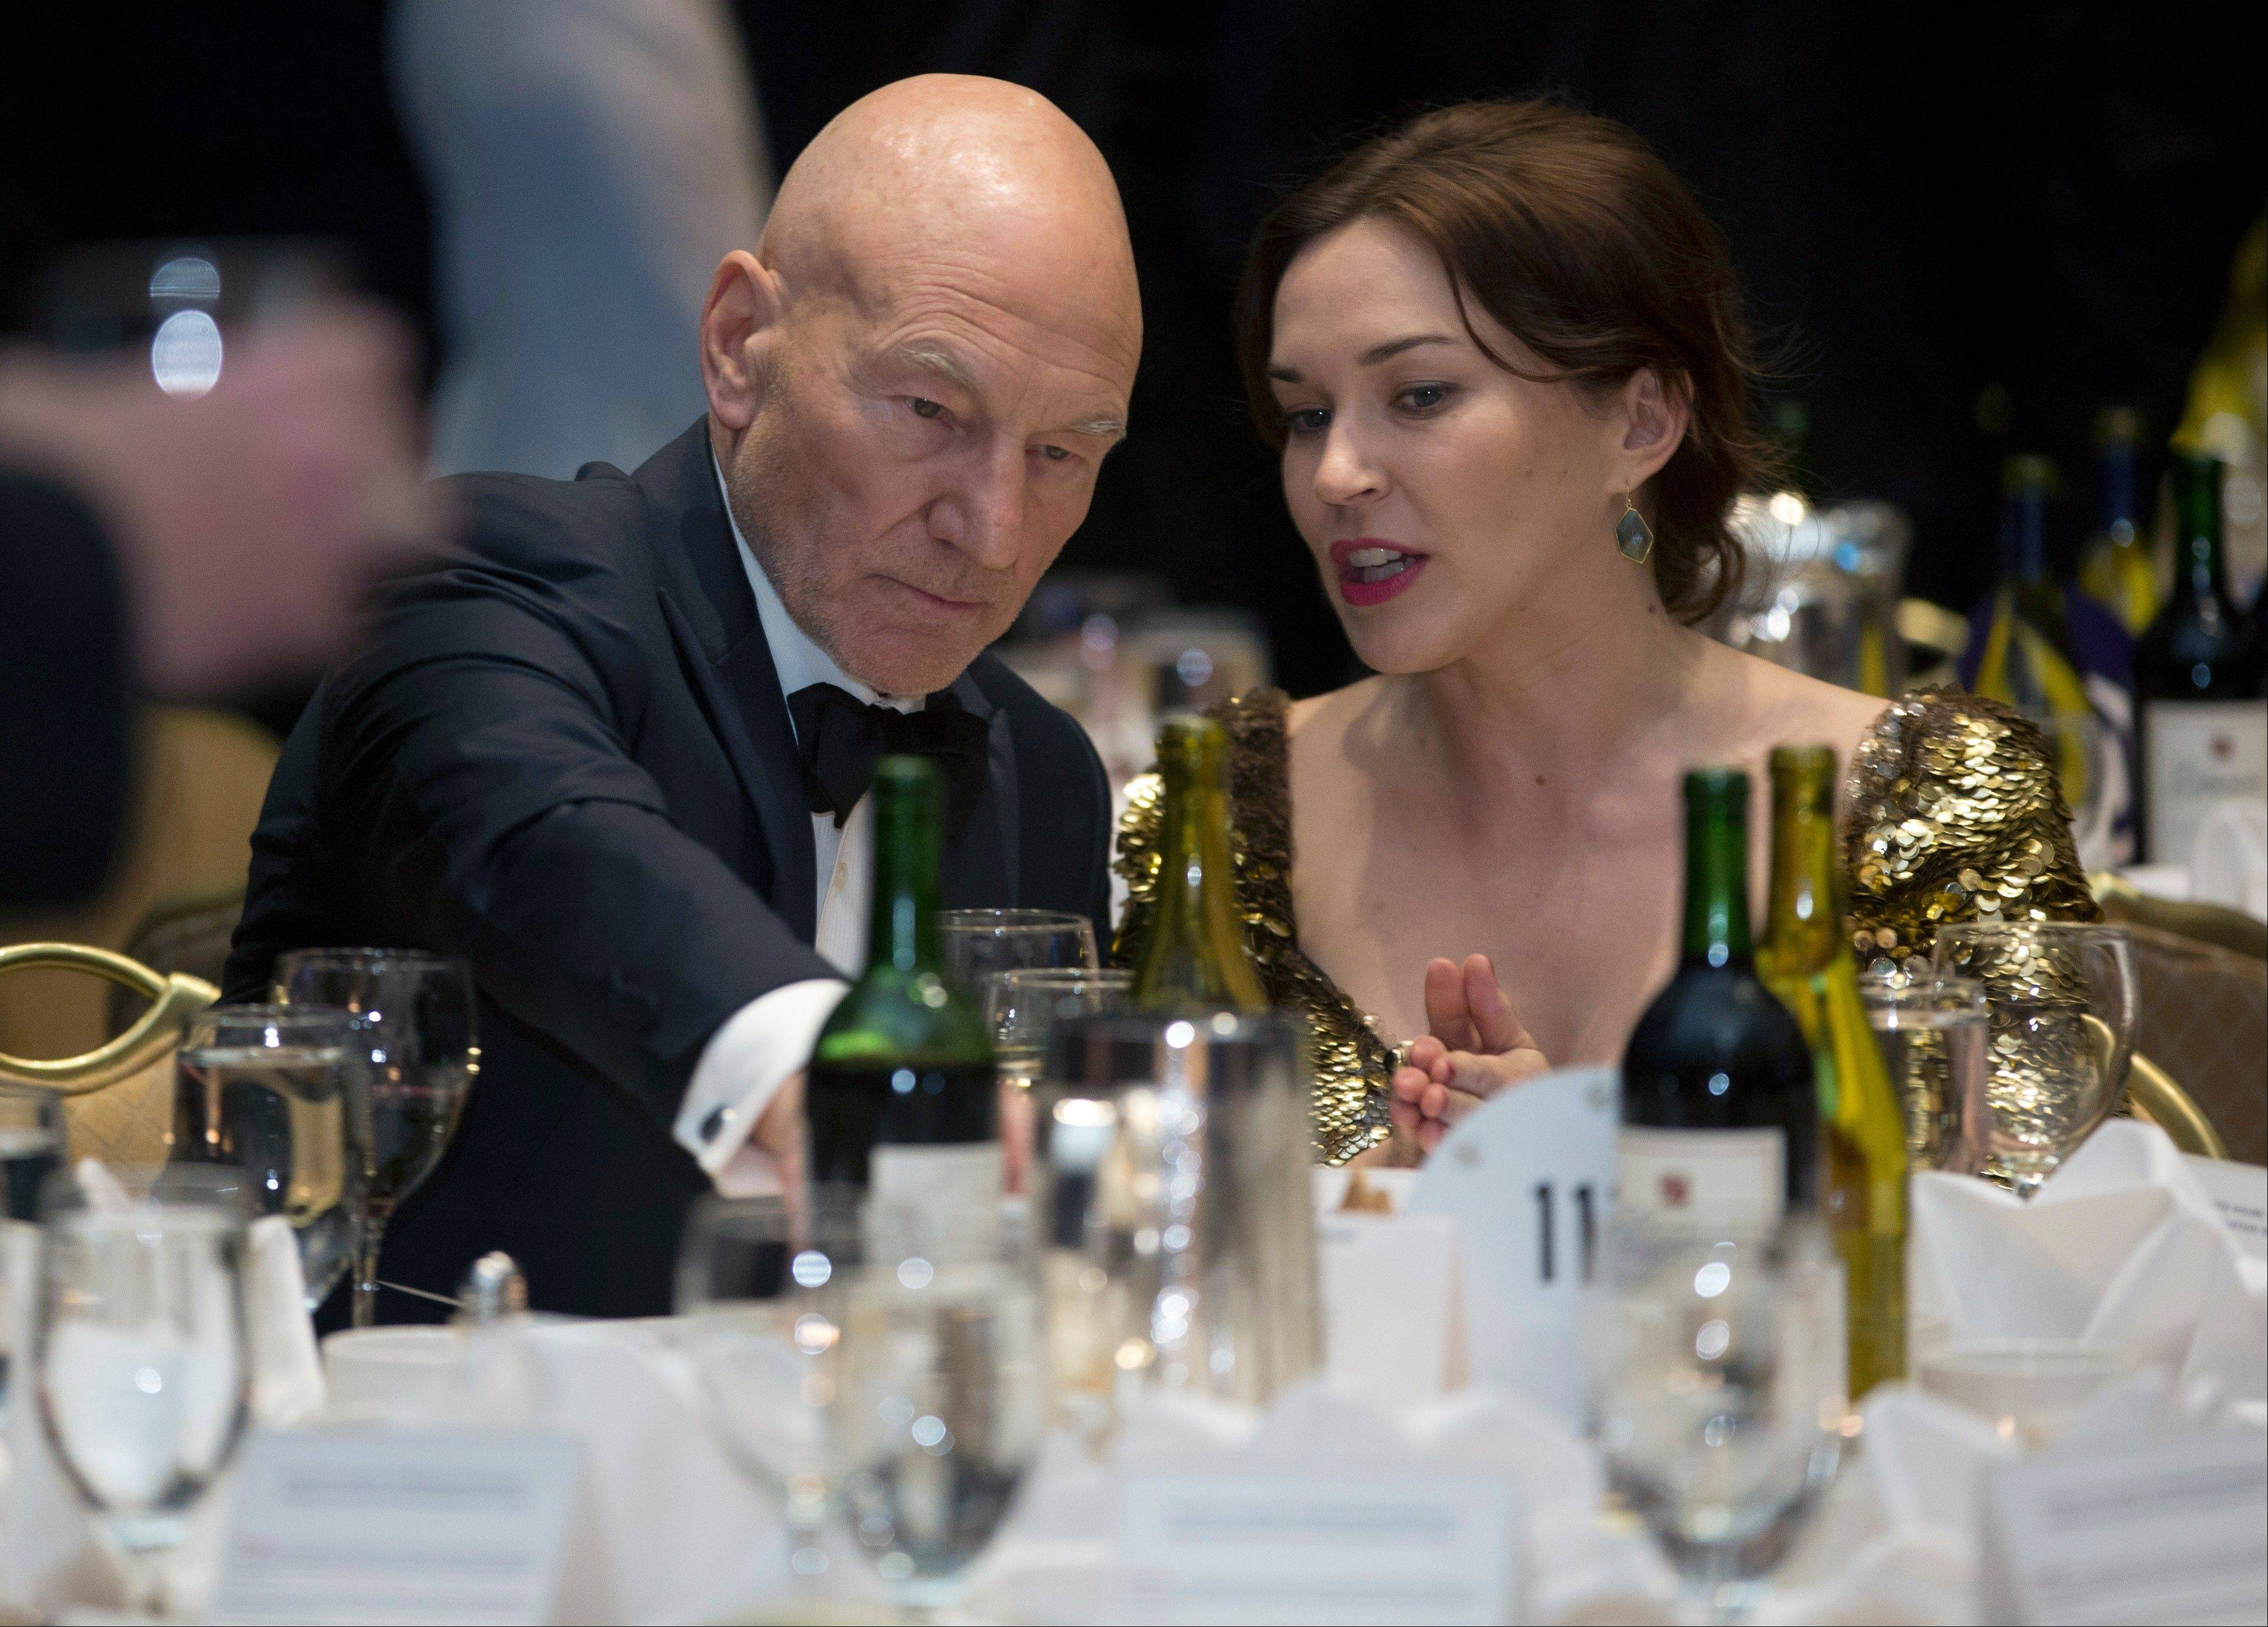 Actor Patrick Stewart, left, and Sunny Ozell attend the White House Correspondents' Association Dinner Saturday at the Washington Hilton Hotel in Washington.